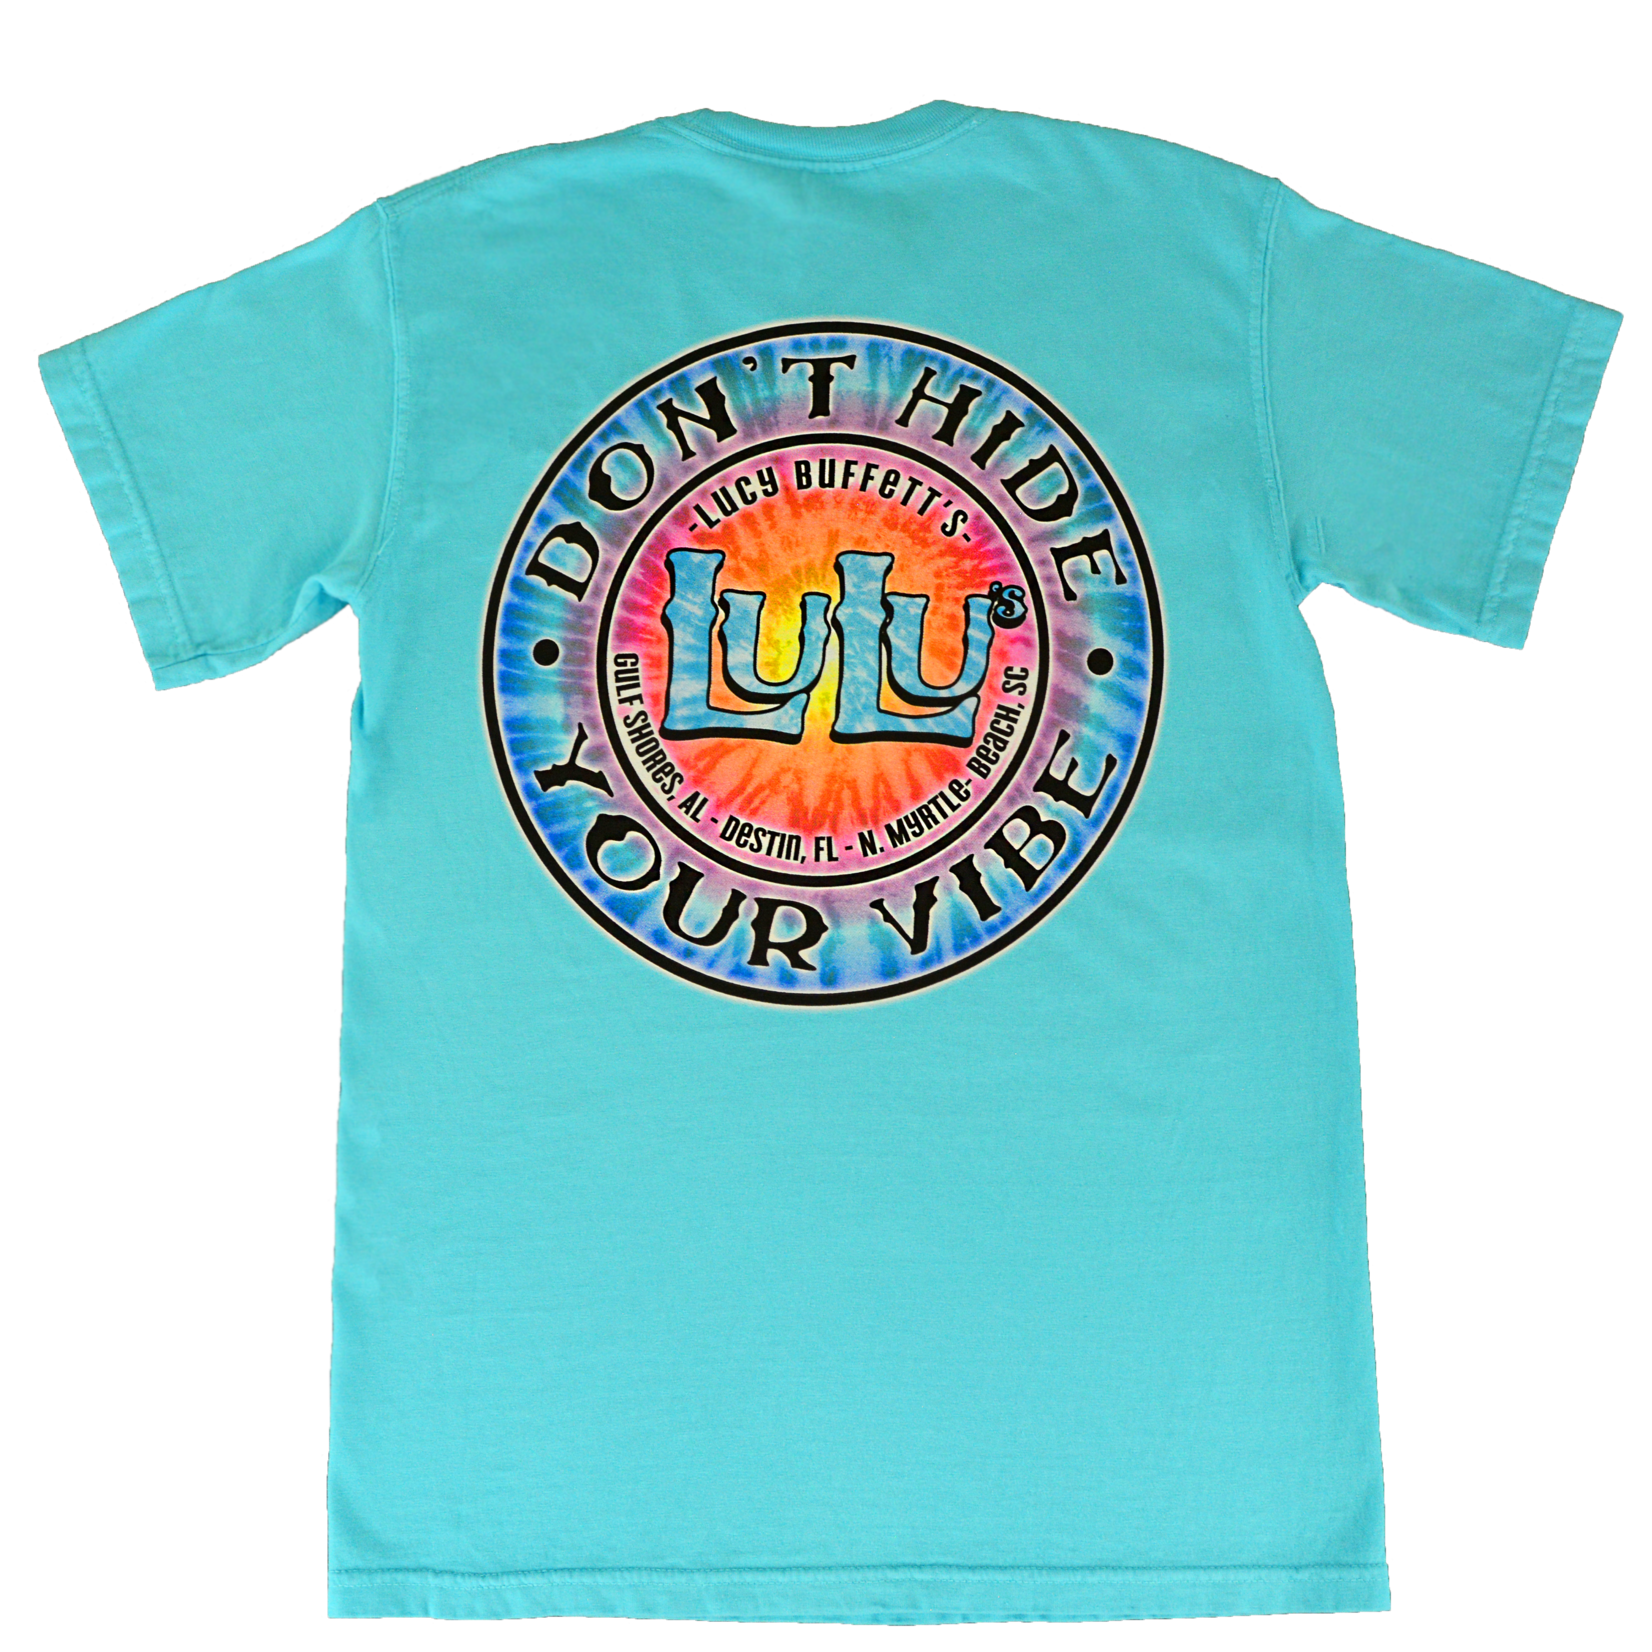 LuLu's Brand Apparel Don't Hide Your Vibe Tee